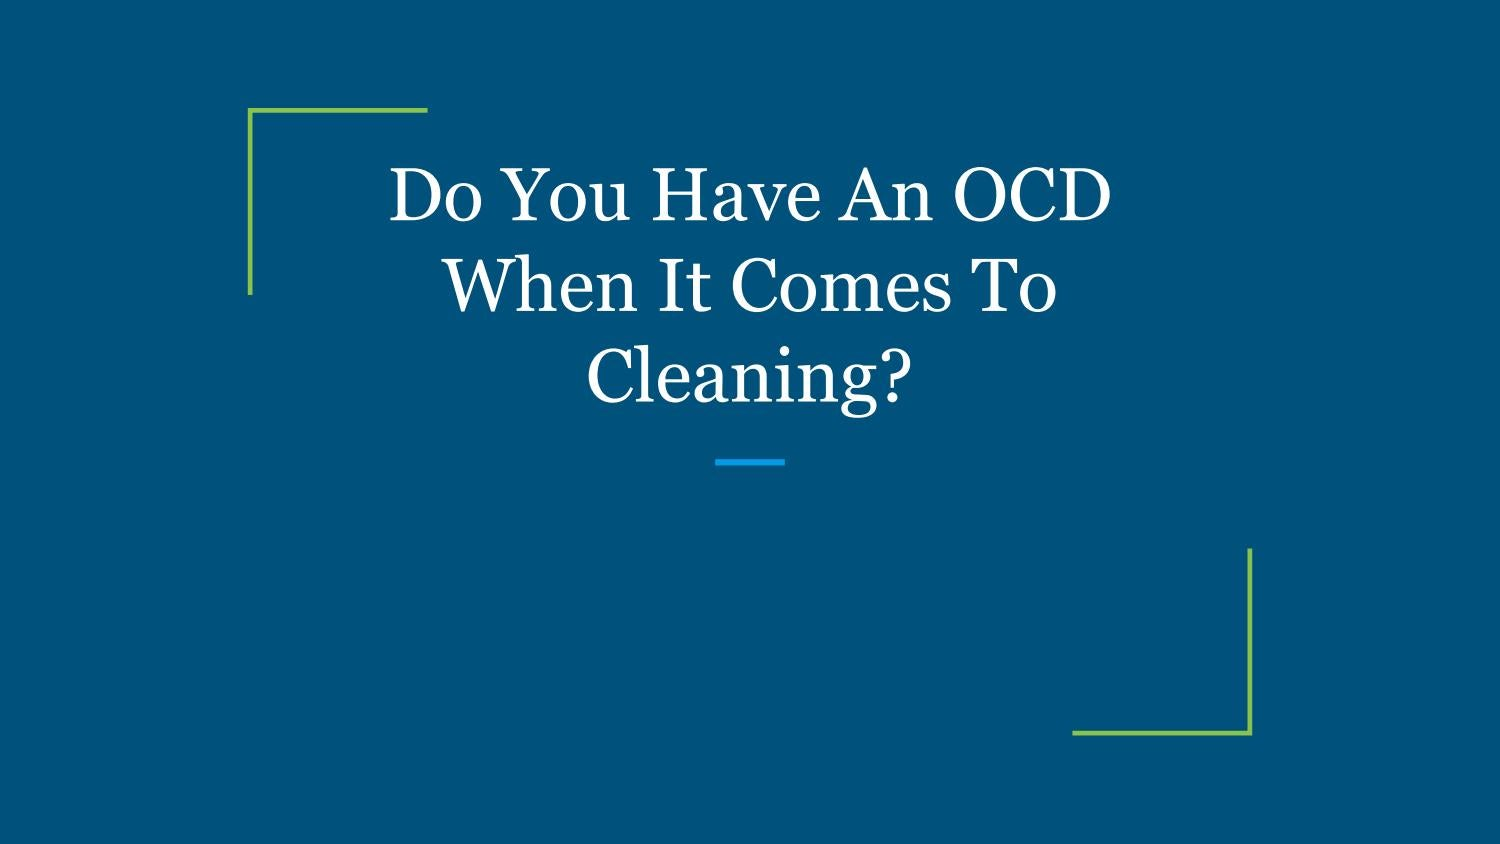 Do you have an ocd when it comes to cleaning by Extreme